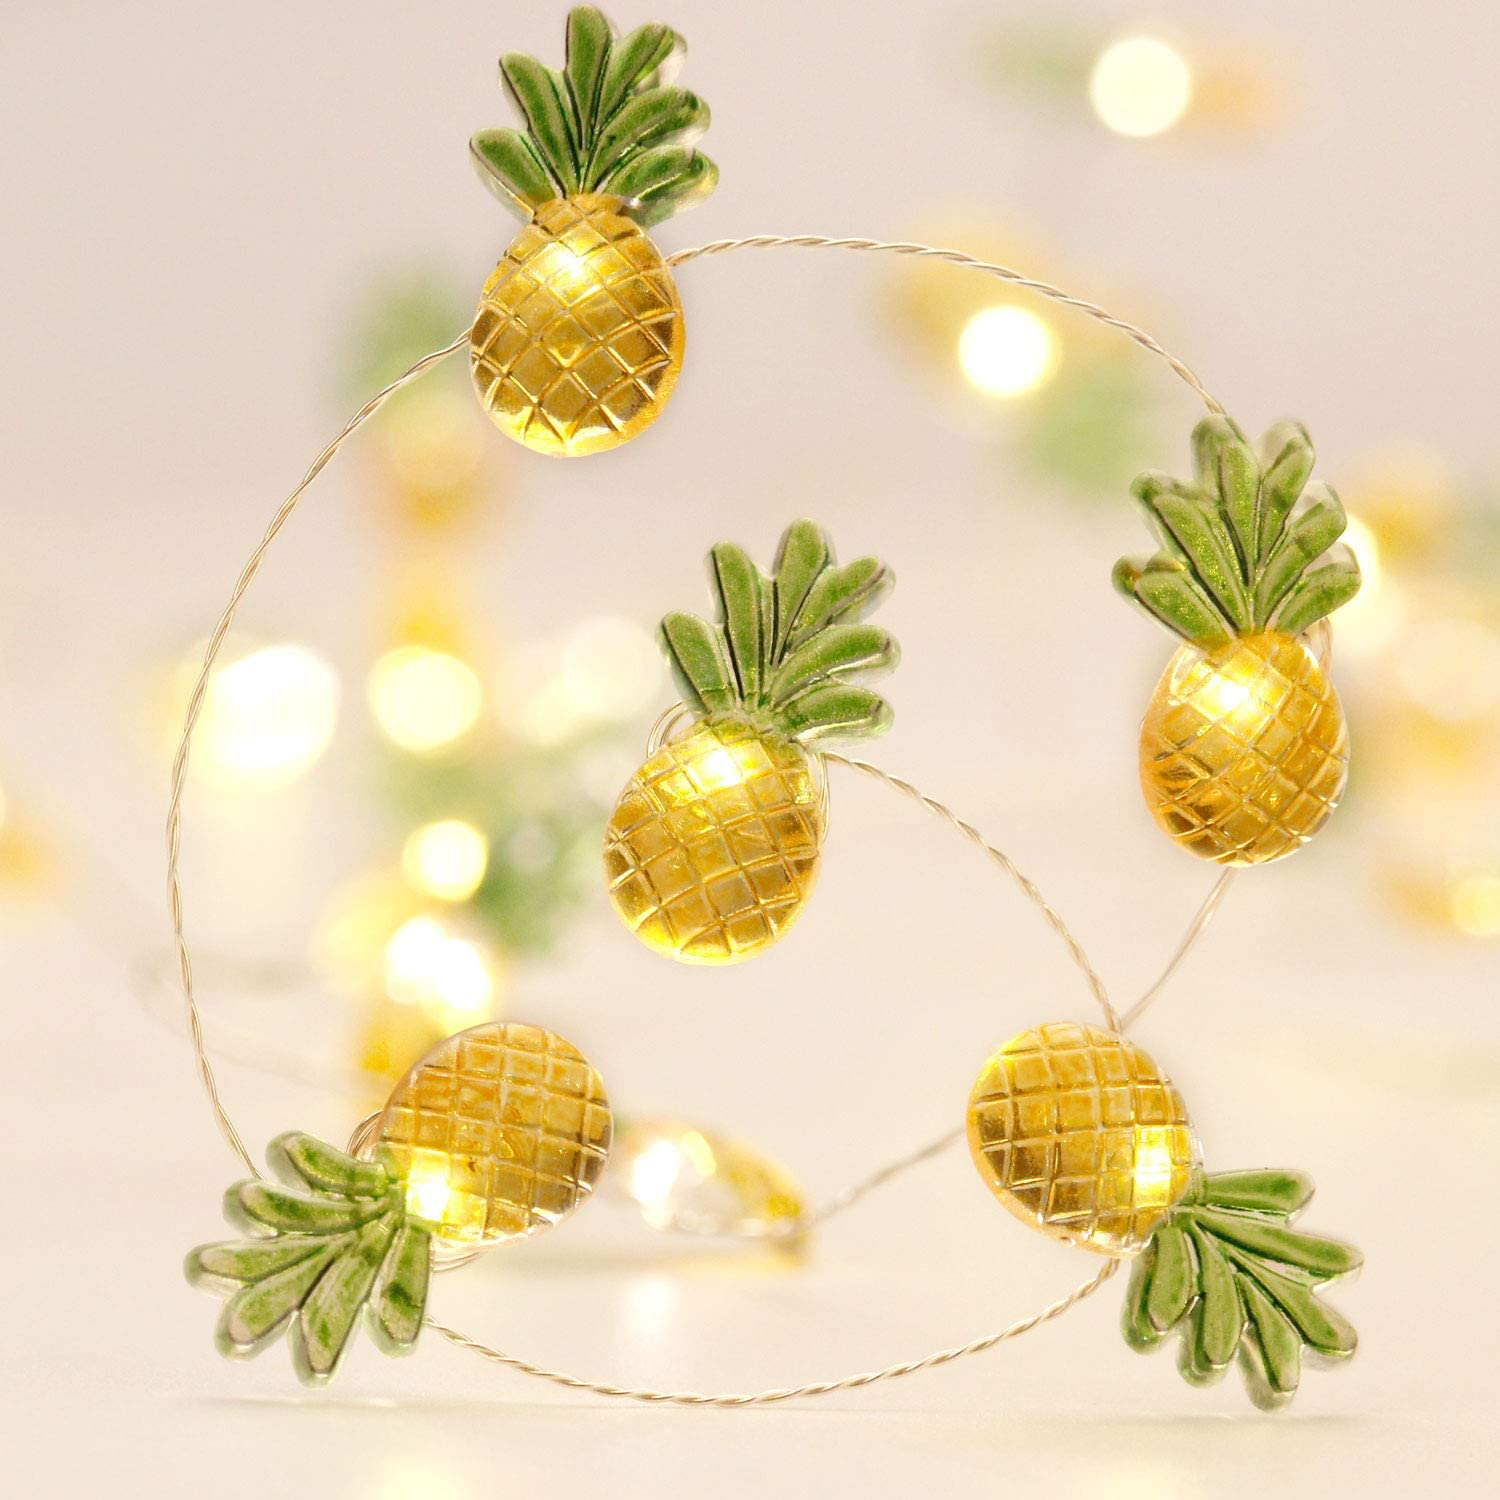 Pineapple String Lights Decoration, 10ft 40LEDs Flexible Wire with Remote and Battery/USB Powered 8 Flicker Modes for Tropical Themed Hospitalit Party, Summer, Christmas Tree Decor Bedroom Ornaments